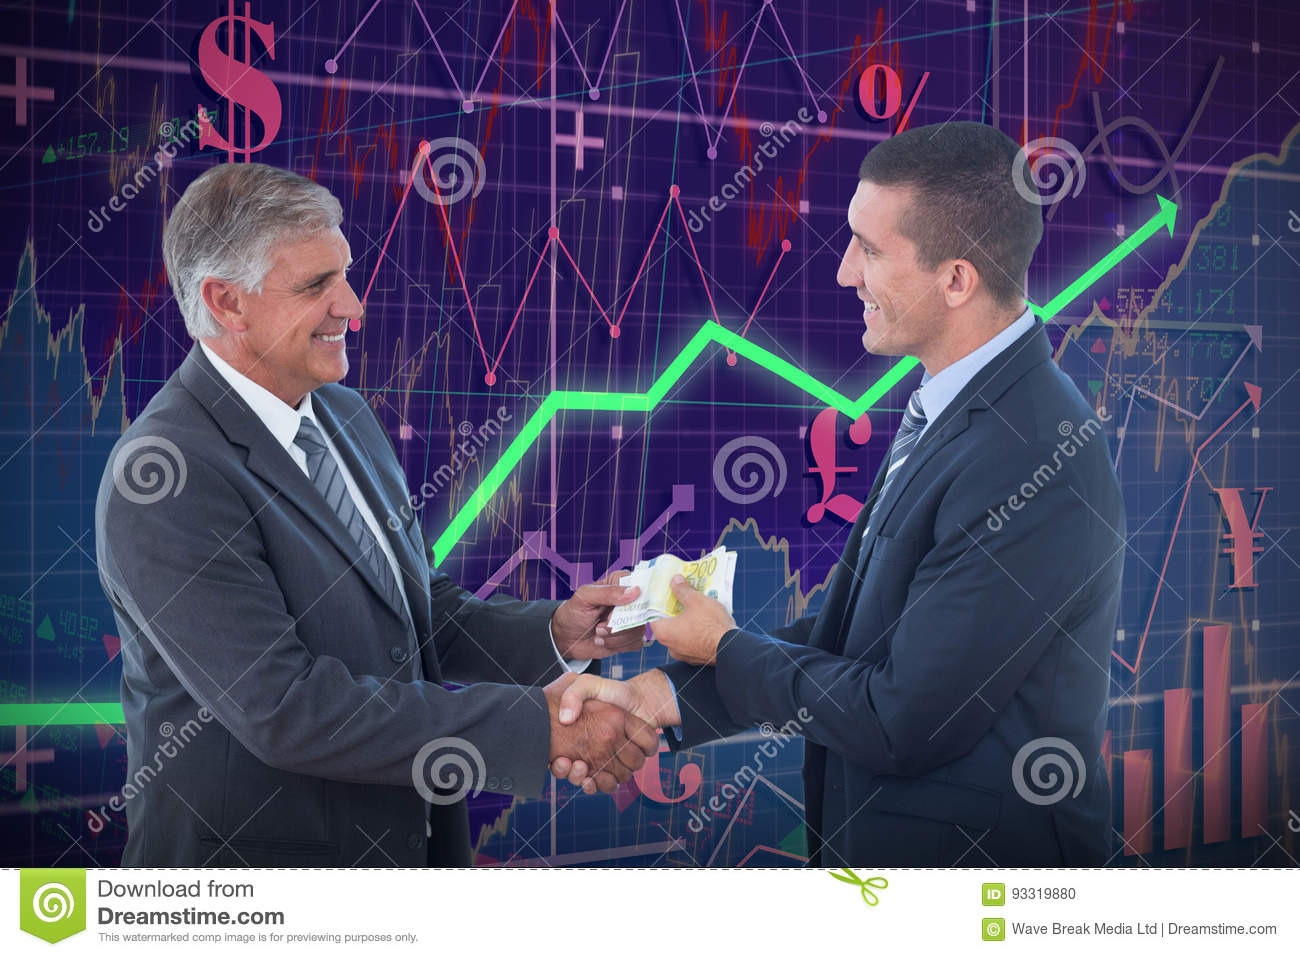 Composite image of businessmen shaking hands and exchanging money